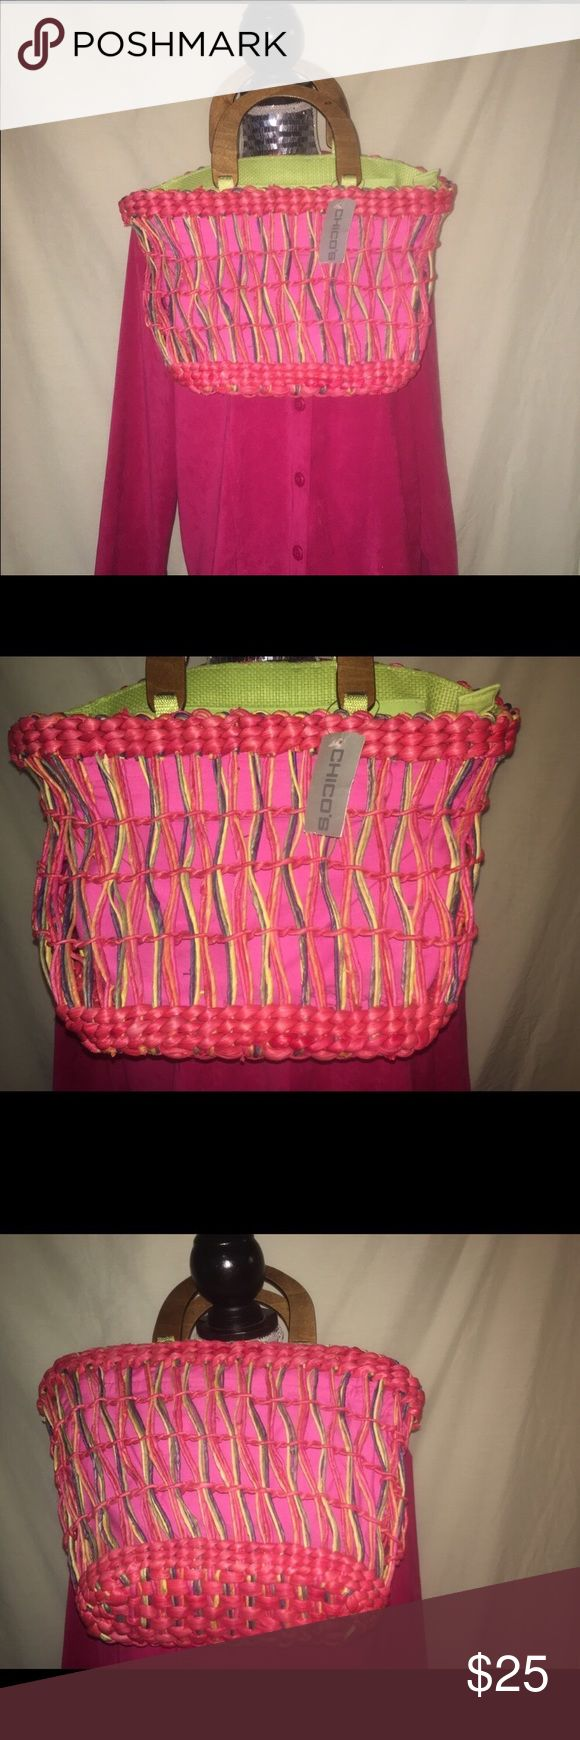 Chico's wicker summer basket Chico's hot pink and green summer wicker bag. I want to represent this honestly. I found this in the bottom of my closet still in the Chico's bag. Unfortunately there were other things on top of it, so it does not lie flat. I'm sure it would eventually with some coaxing, but it's just not my jam anymore. I'm straight up Coach these days. Inside is stellar. The colors are vibrant and eye catching. It is wicker so there are natural flaws. Seriously cute. Spring is…